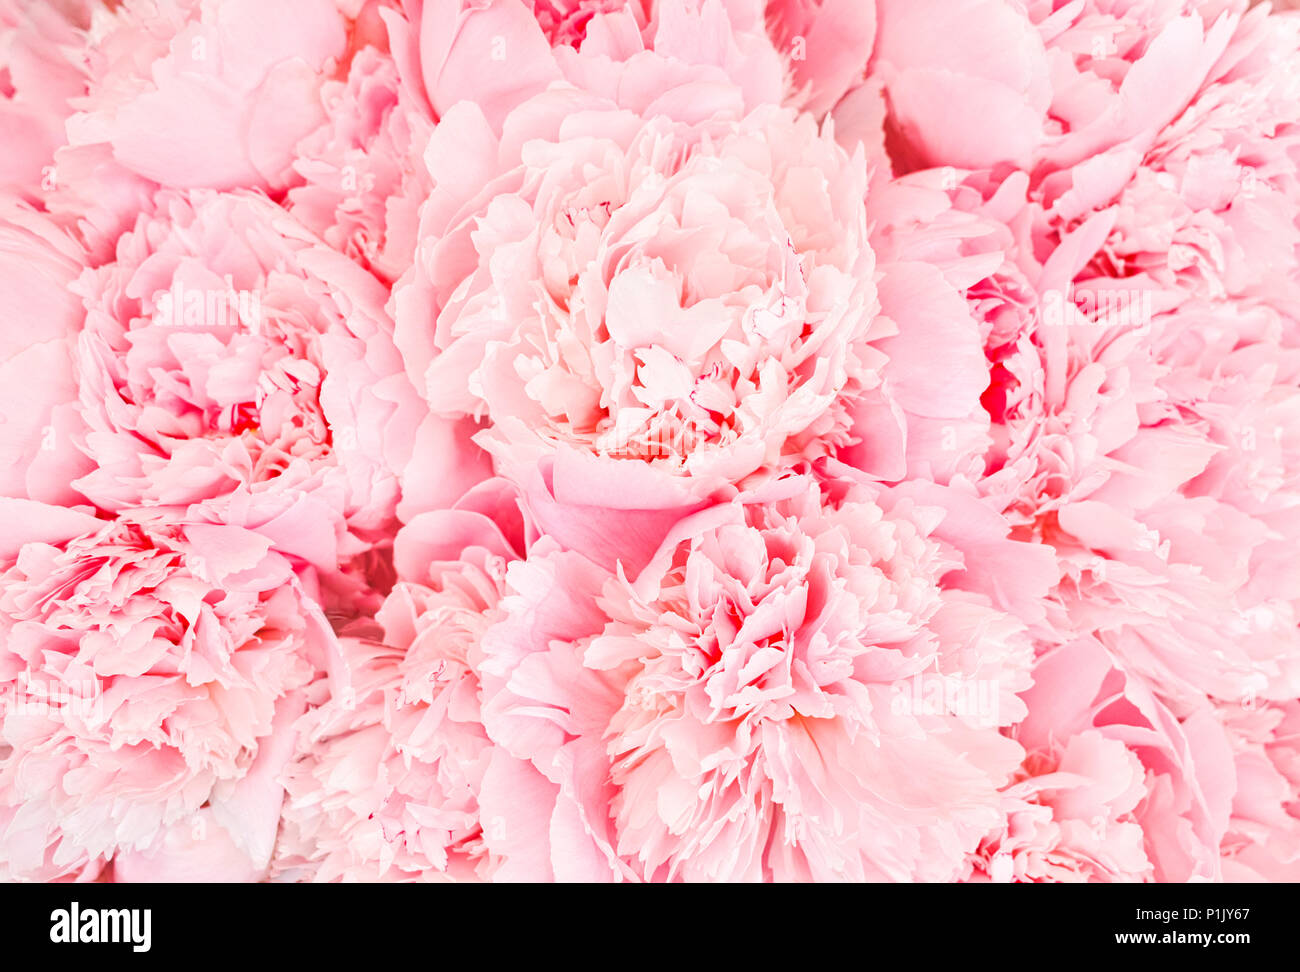 roses wall - Stock Image